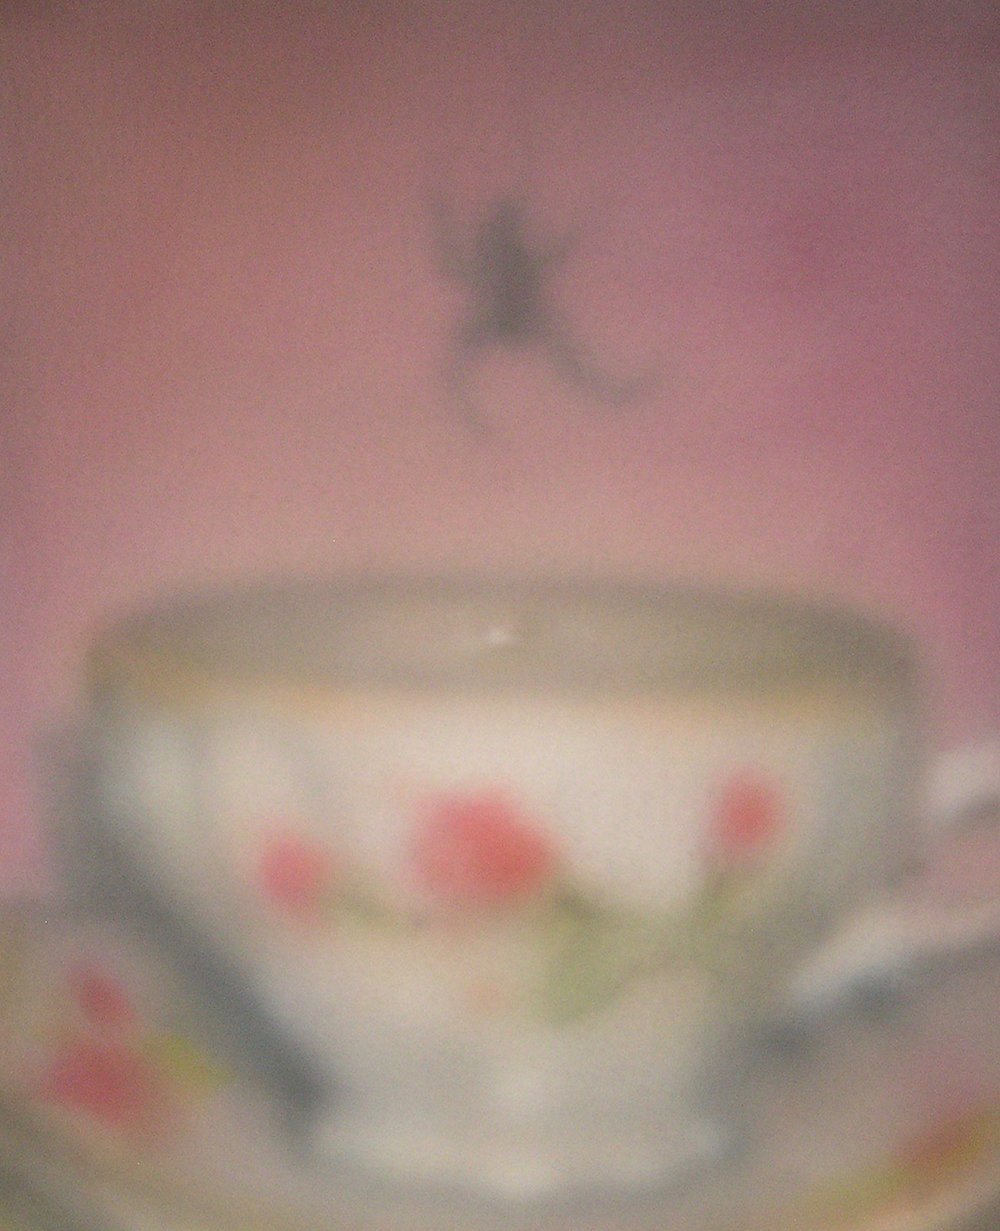 Spider Looking at its Reflection in a Lightly-Brewed Cup of Tea